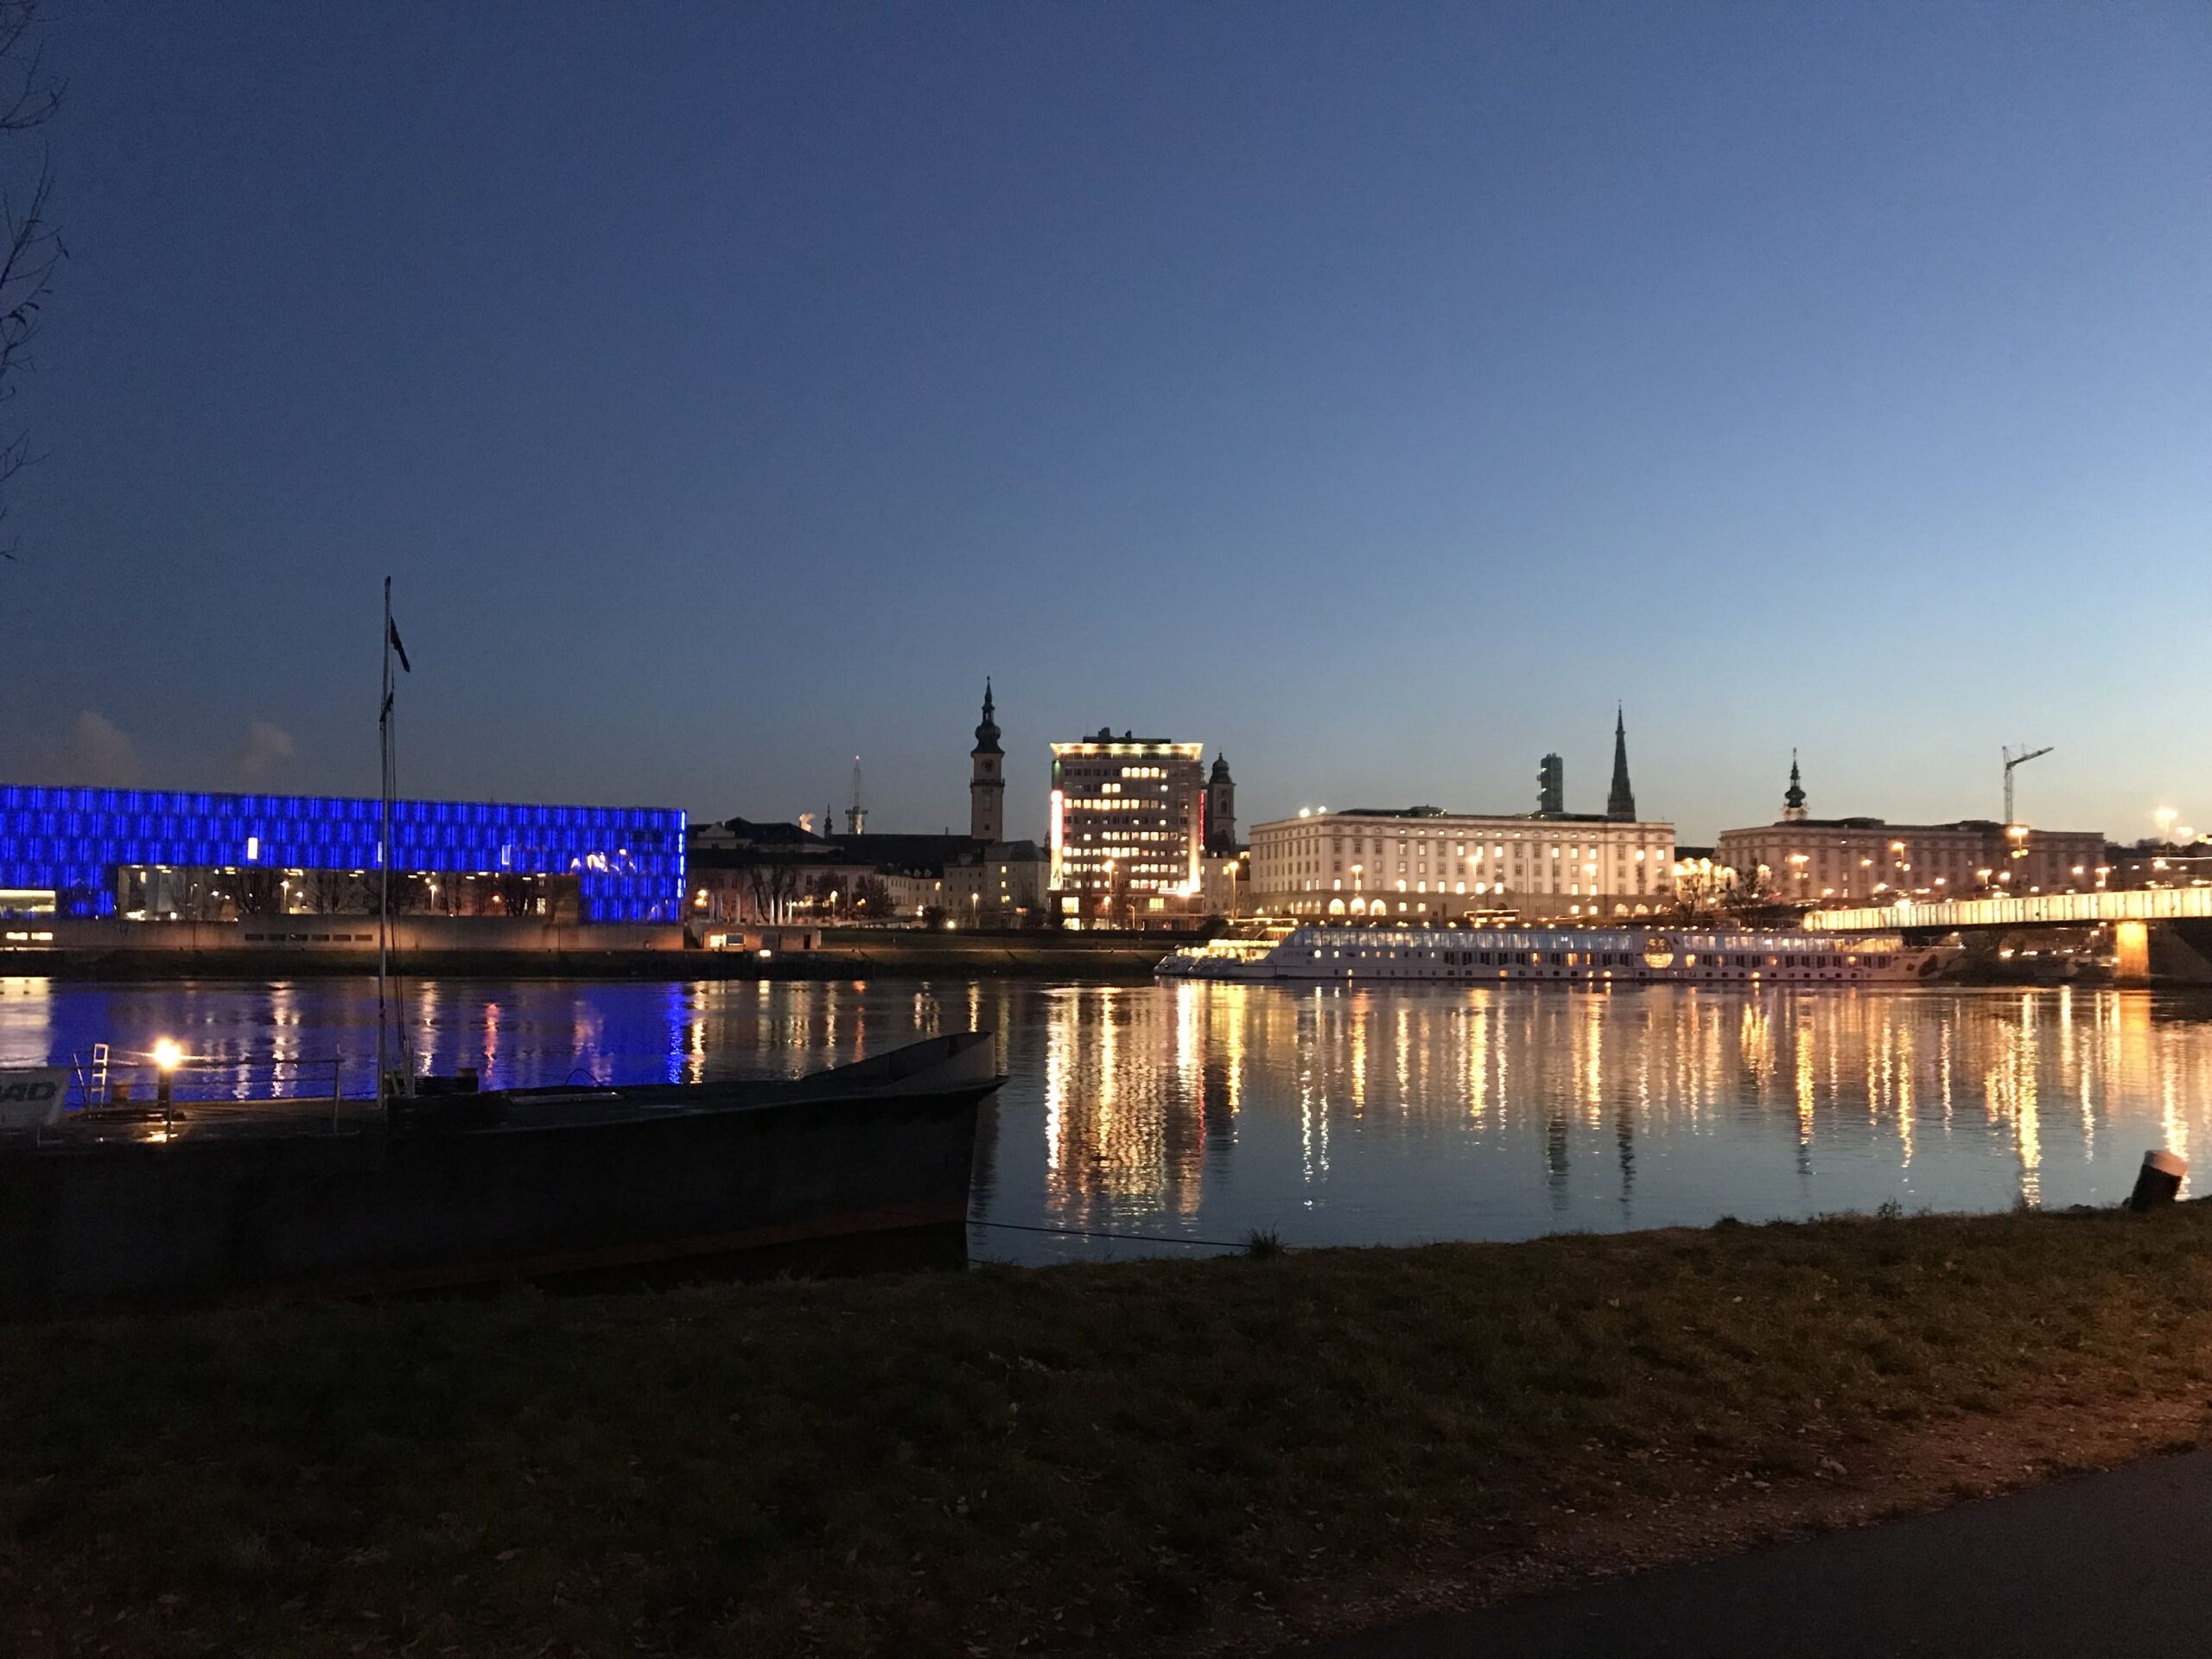 Lights reflected in the Danube and the Lentos of Linz.